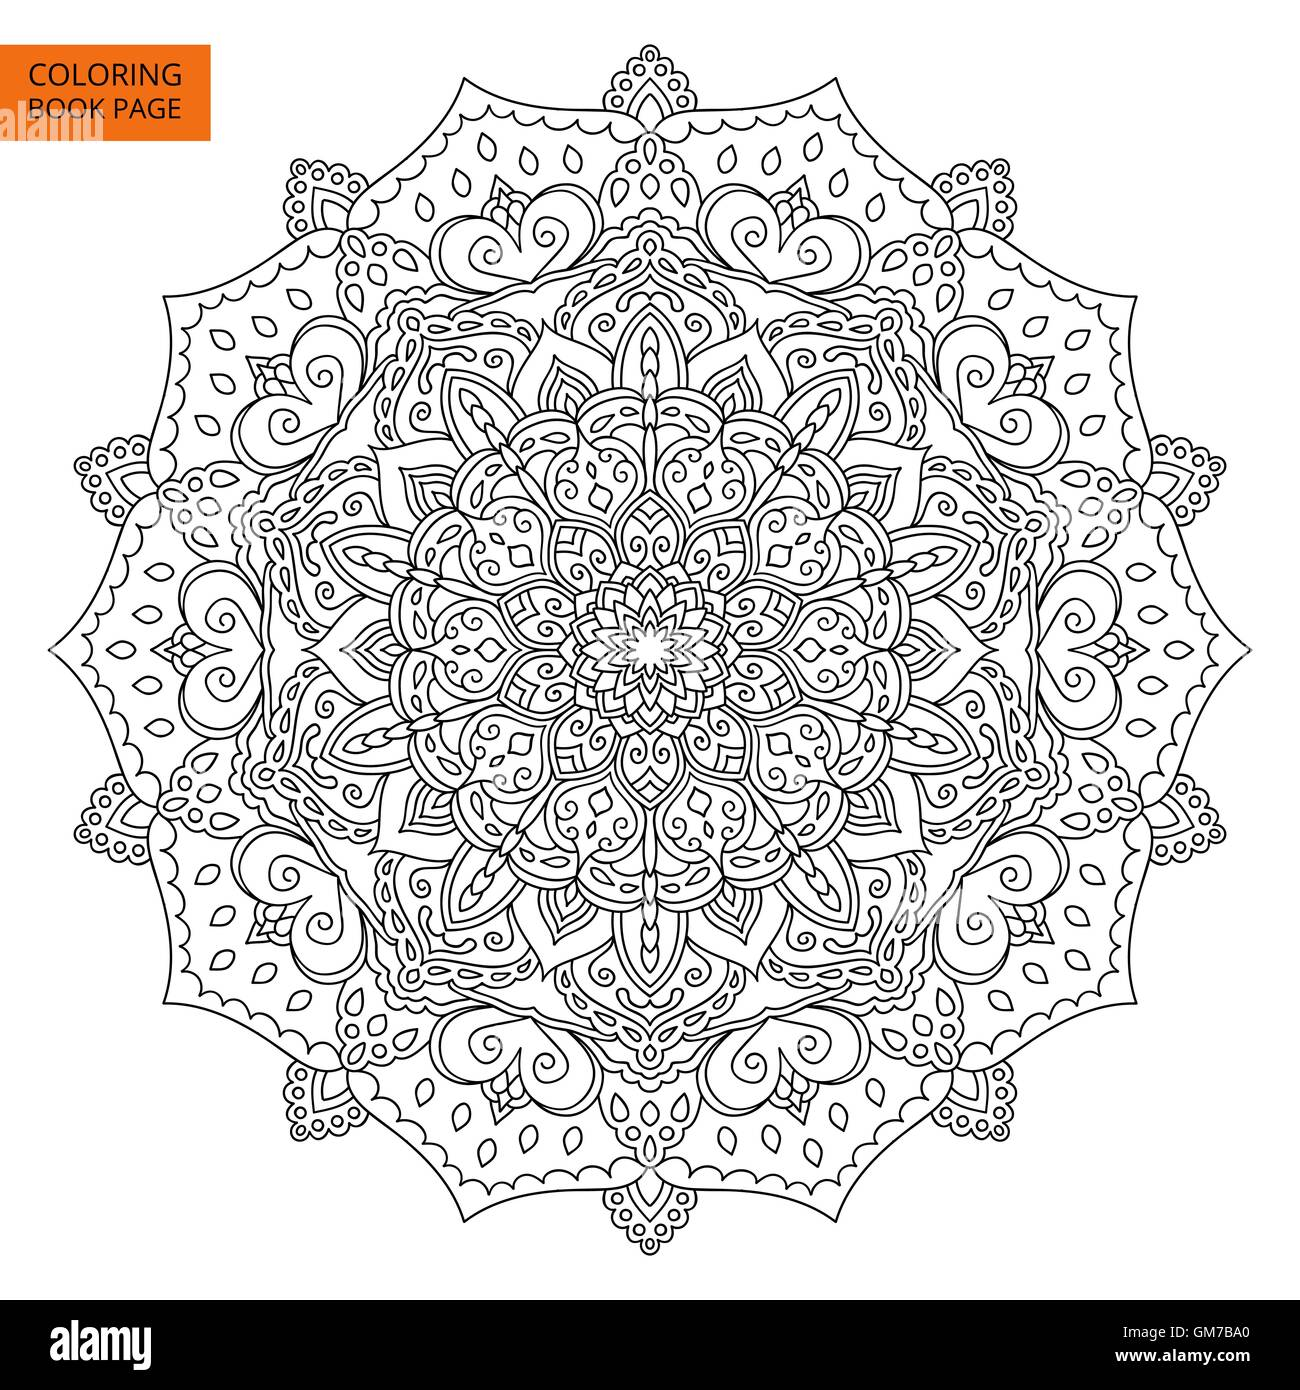 Coloring Book Page with Mandala Outline - Stock Image